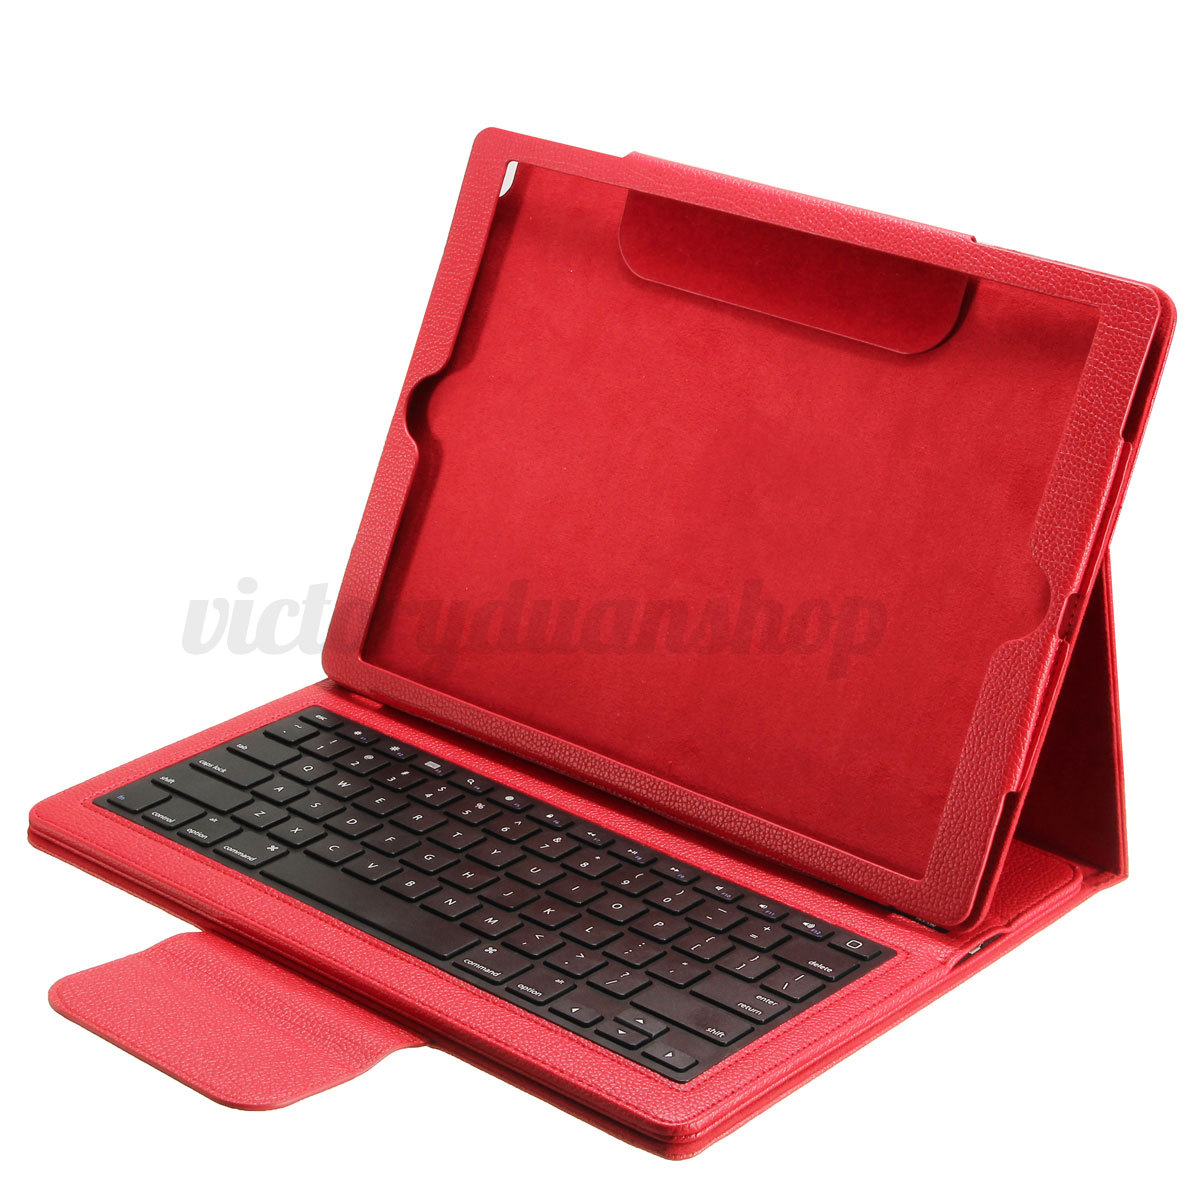 housse coque etui pr ipad pro 12 9 39 39 bluetooth 3 0 clavier usb charge c ble ebay. Black Bedroom Furniture Sets. Home Design Ideas